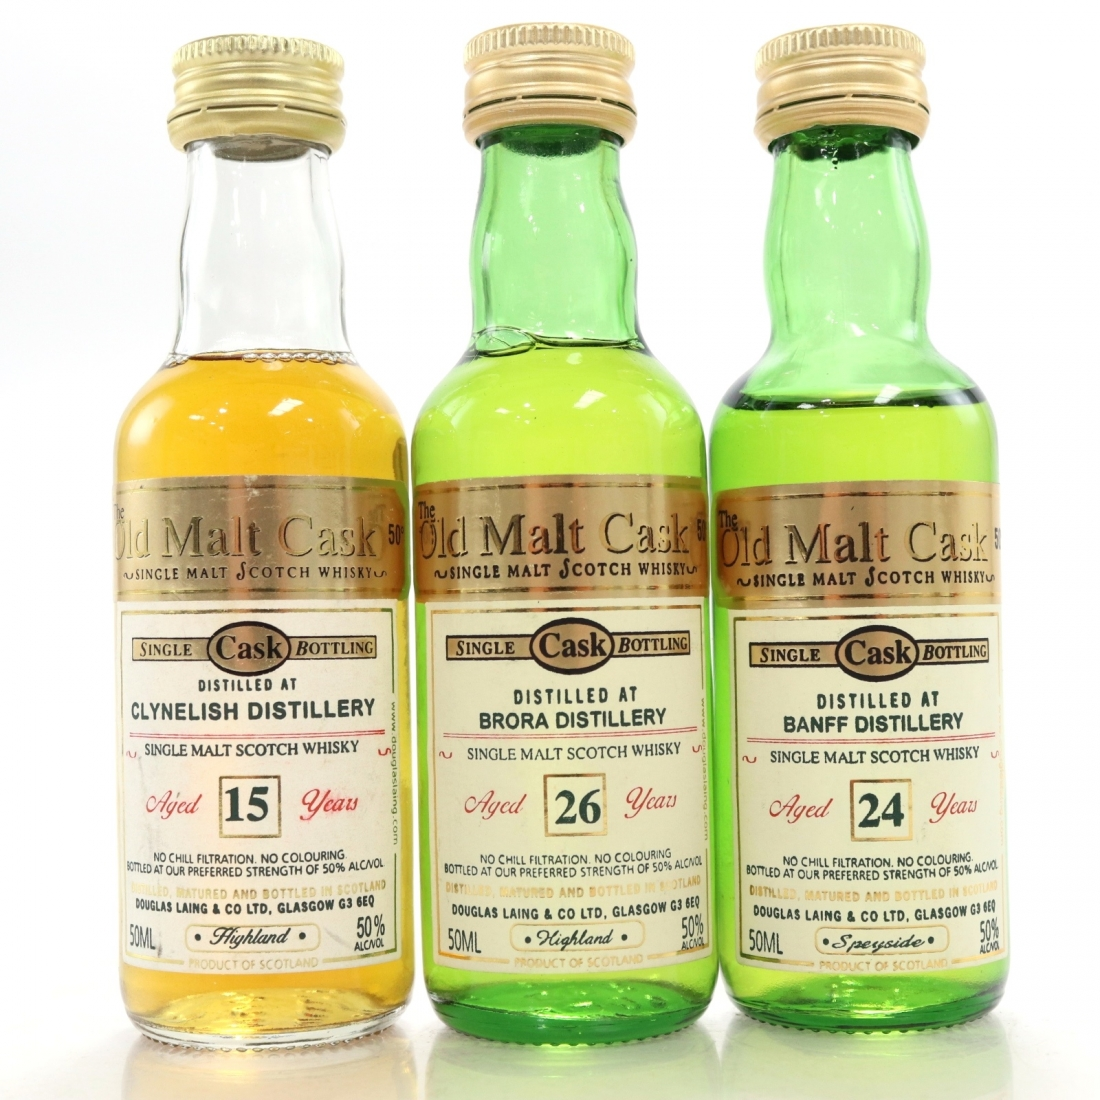 Douglas Laing Miniature Selection 3 x 5cl / includes Brora 26 Year Old